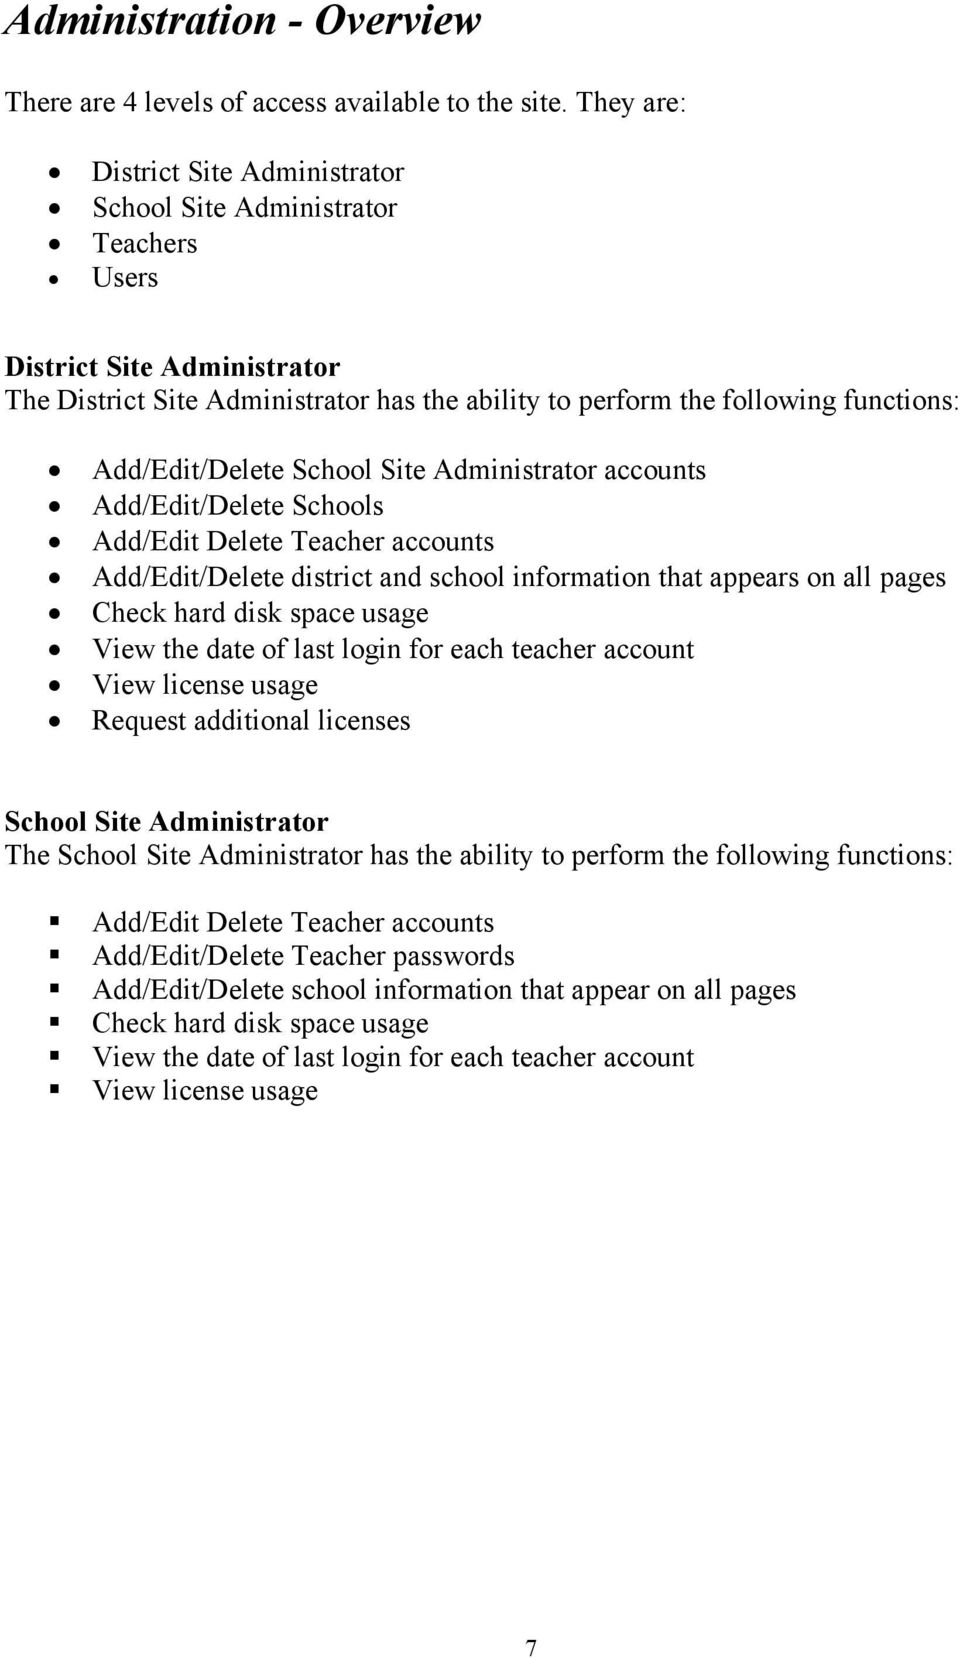 Add/Edit/Delete School Site Administrator accounts Add/Edit/Delete Schools Add/Edit Delete Teacher accounts Add/Edit/Delete district and school information that appears on all pages Check hard disk